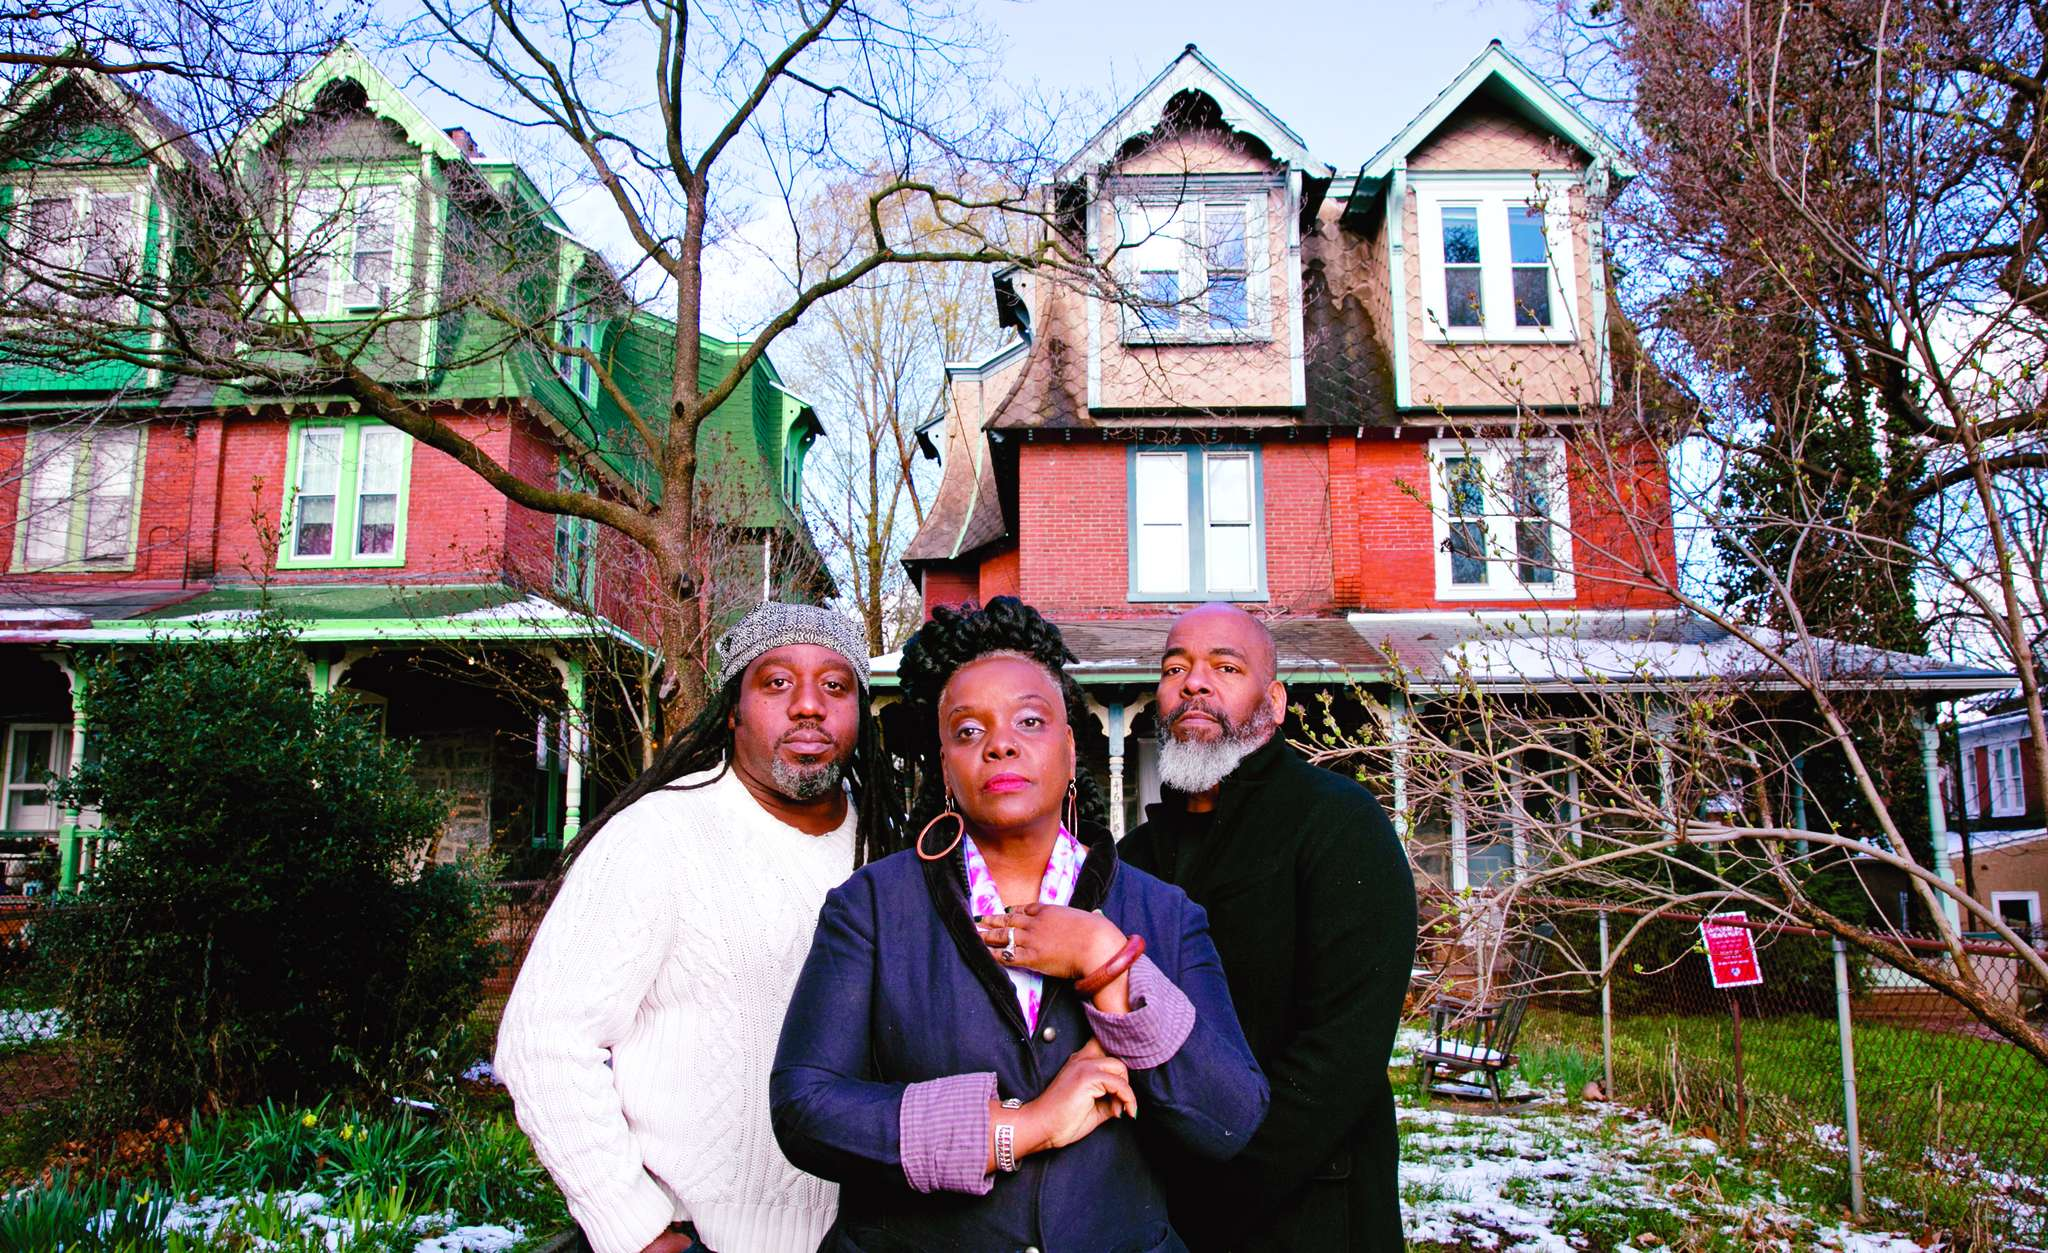 Collaborators (from left) Ian Friday, Vashti Dubois, and Michael Clemmons made Dubois´ vision of the Colored Girls Museum a reality.